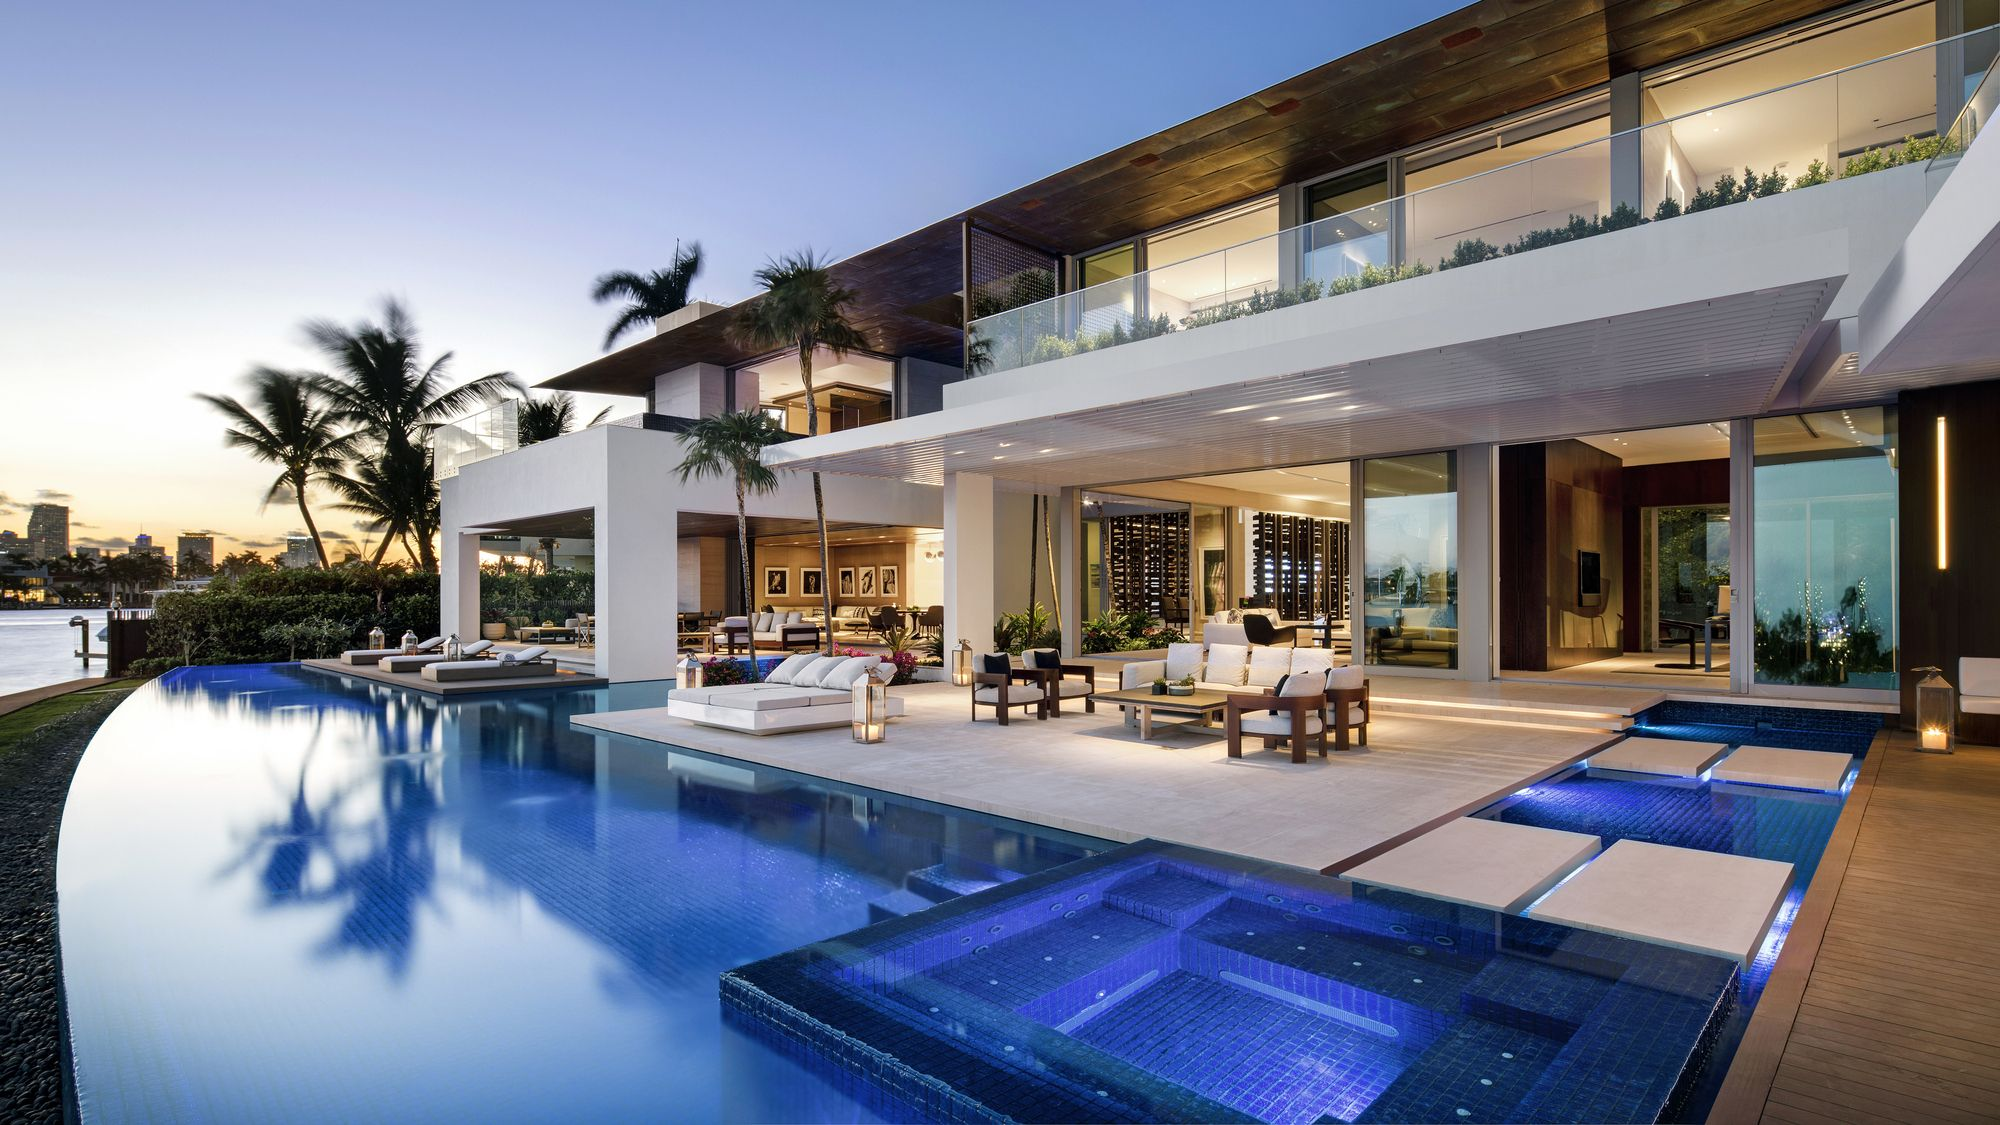 Image 6 Of 20 From Gallery Of Dilido House Saota Photograph By Adam Letch Miami Houses Fancy Houses Luxury Homes Dream Houses